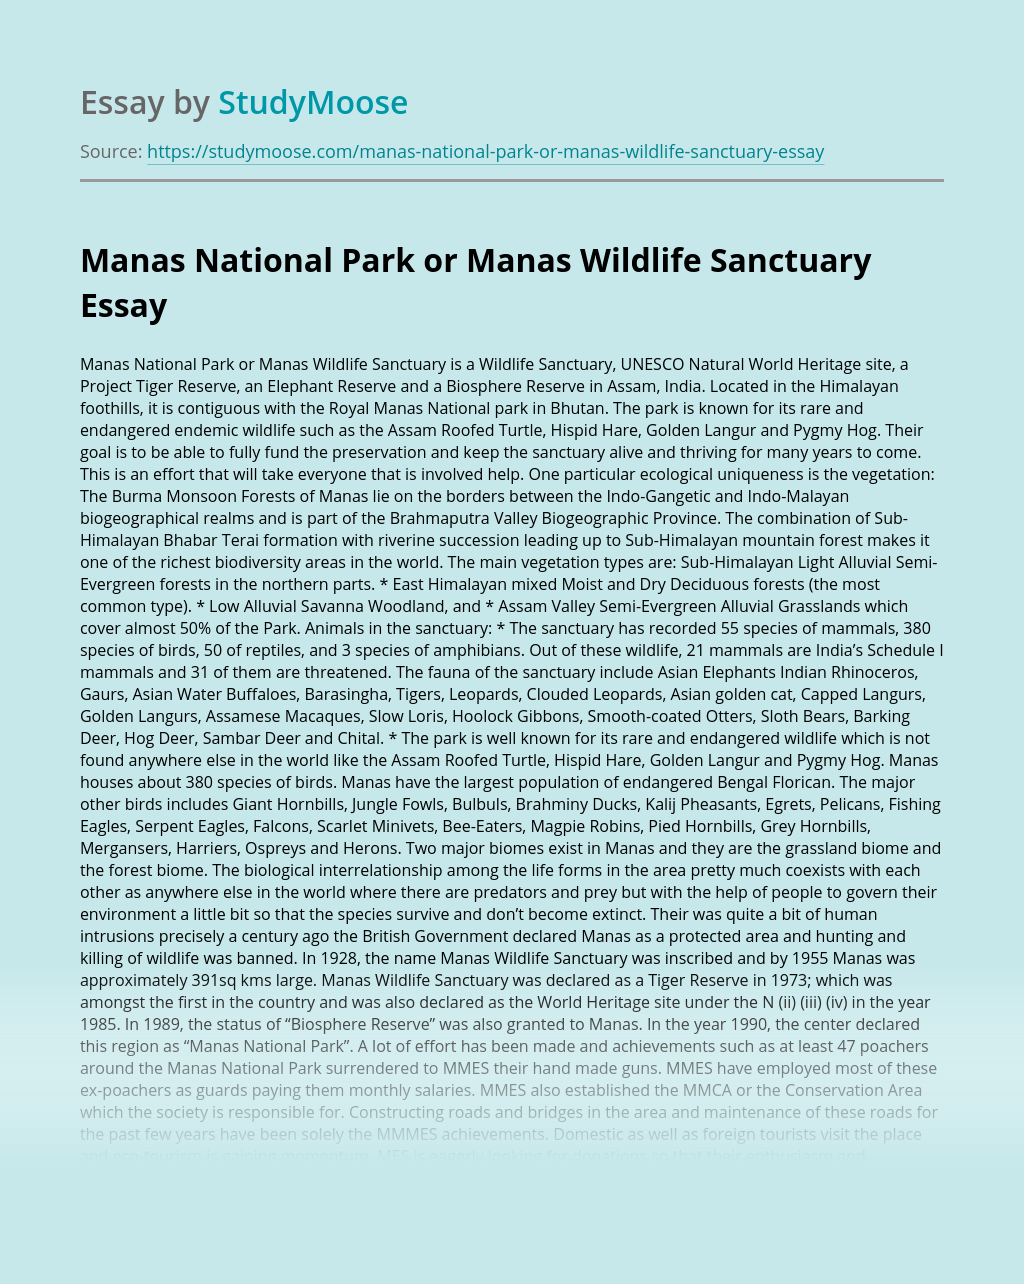 Manas National Park or Manas Wildlife Sanctuary